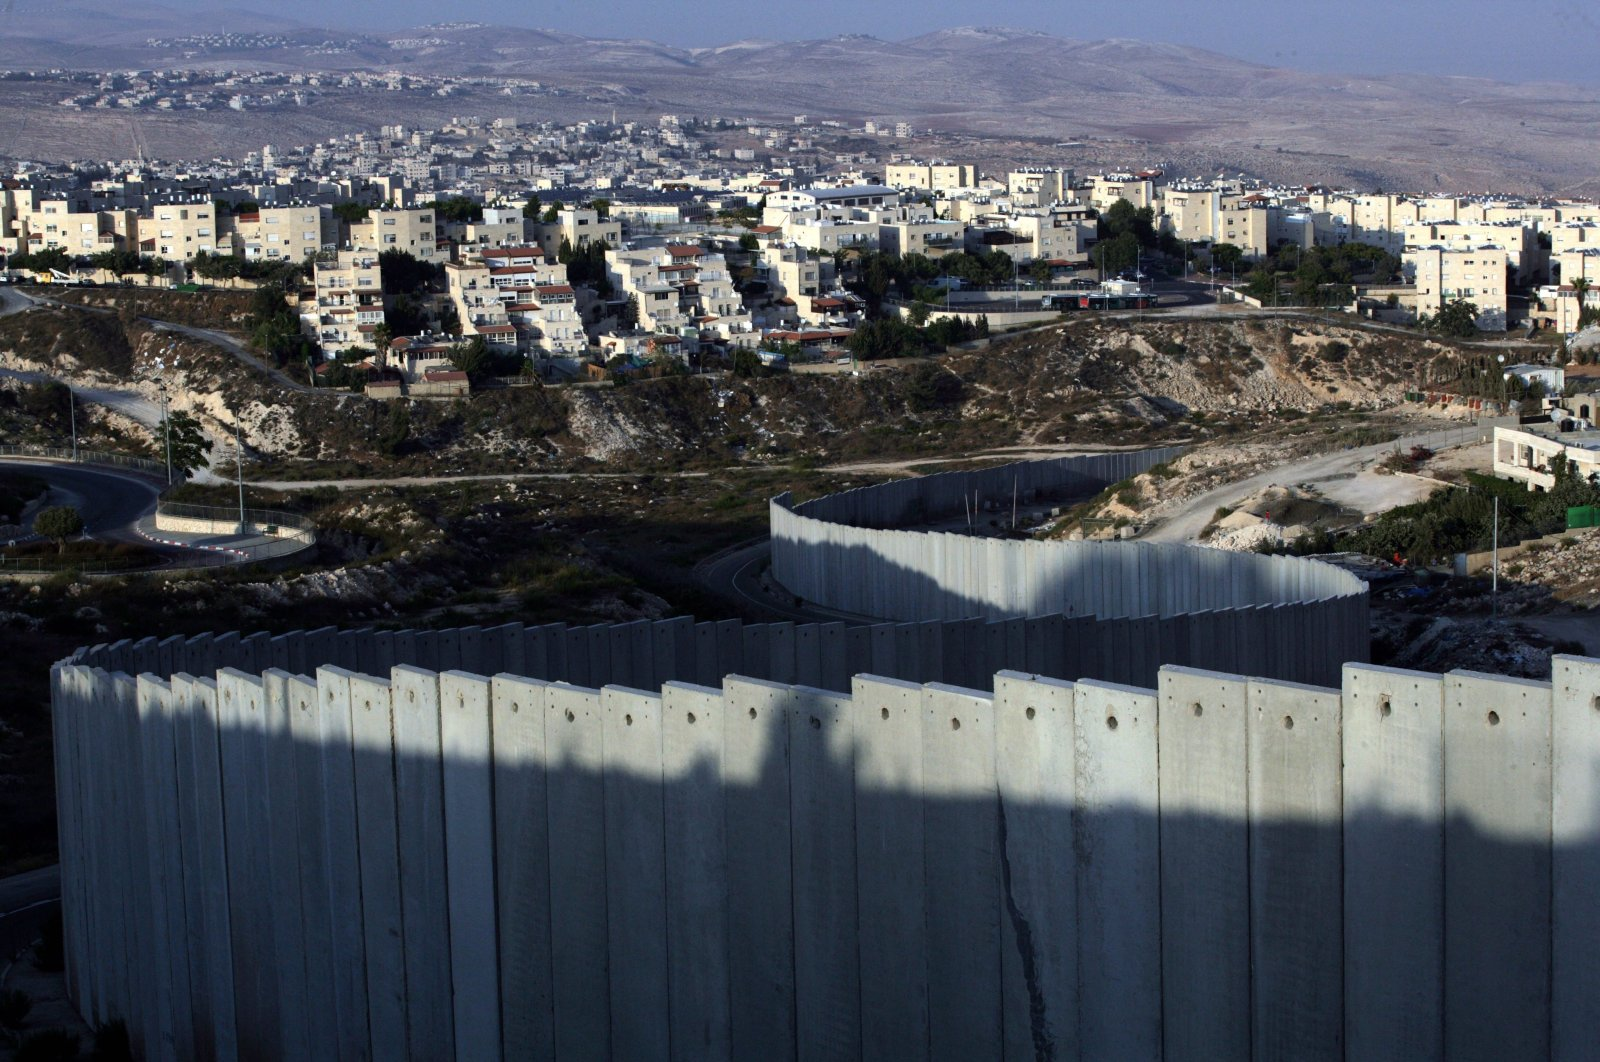 A general view shows the Israeli barrier in the occupied West Bank near the illegal Jewish settlement of Pisgat Zeev in Jerusalem, Sep. 18, 2011. (EPA Photo)